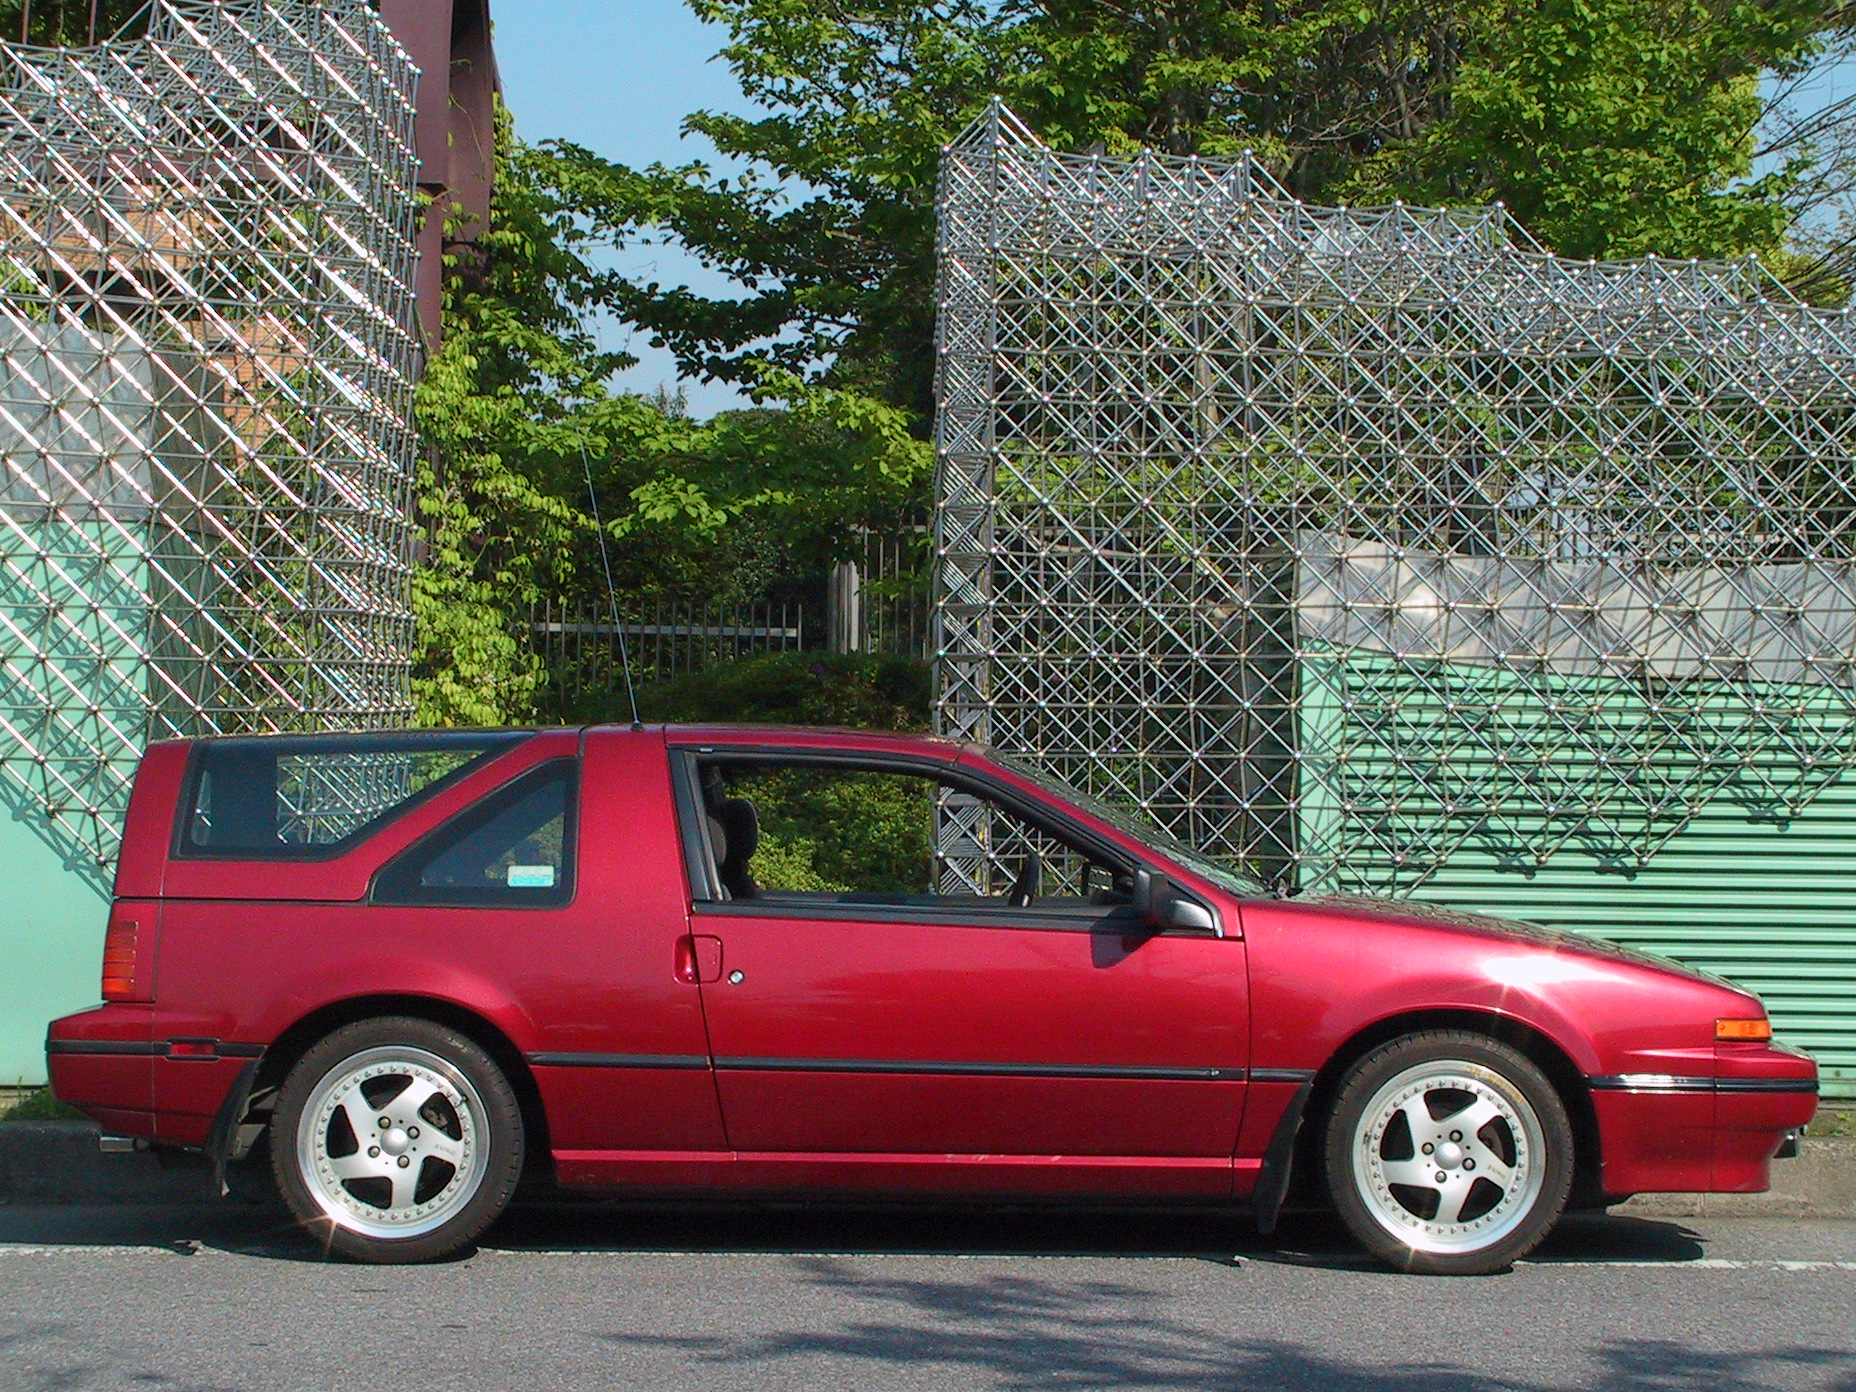 Nissan exa photo - 9